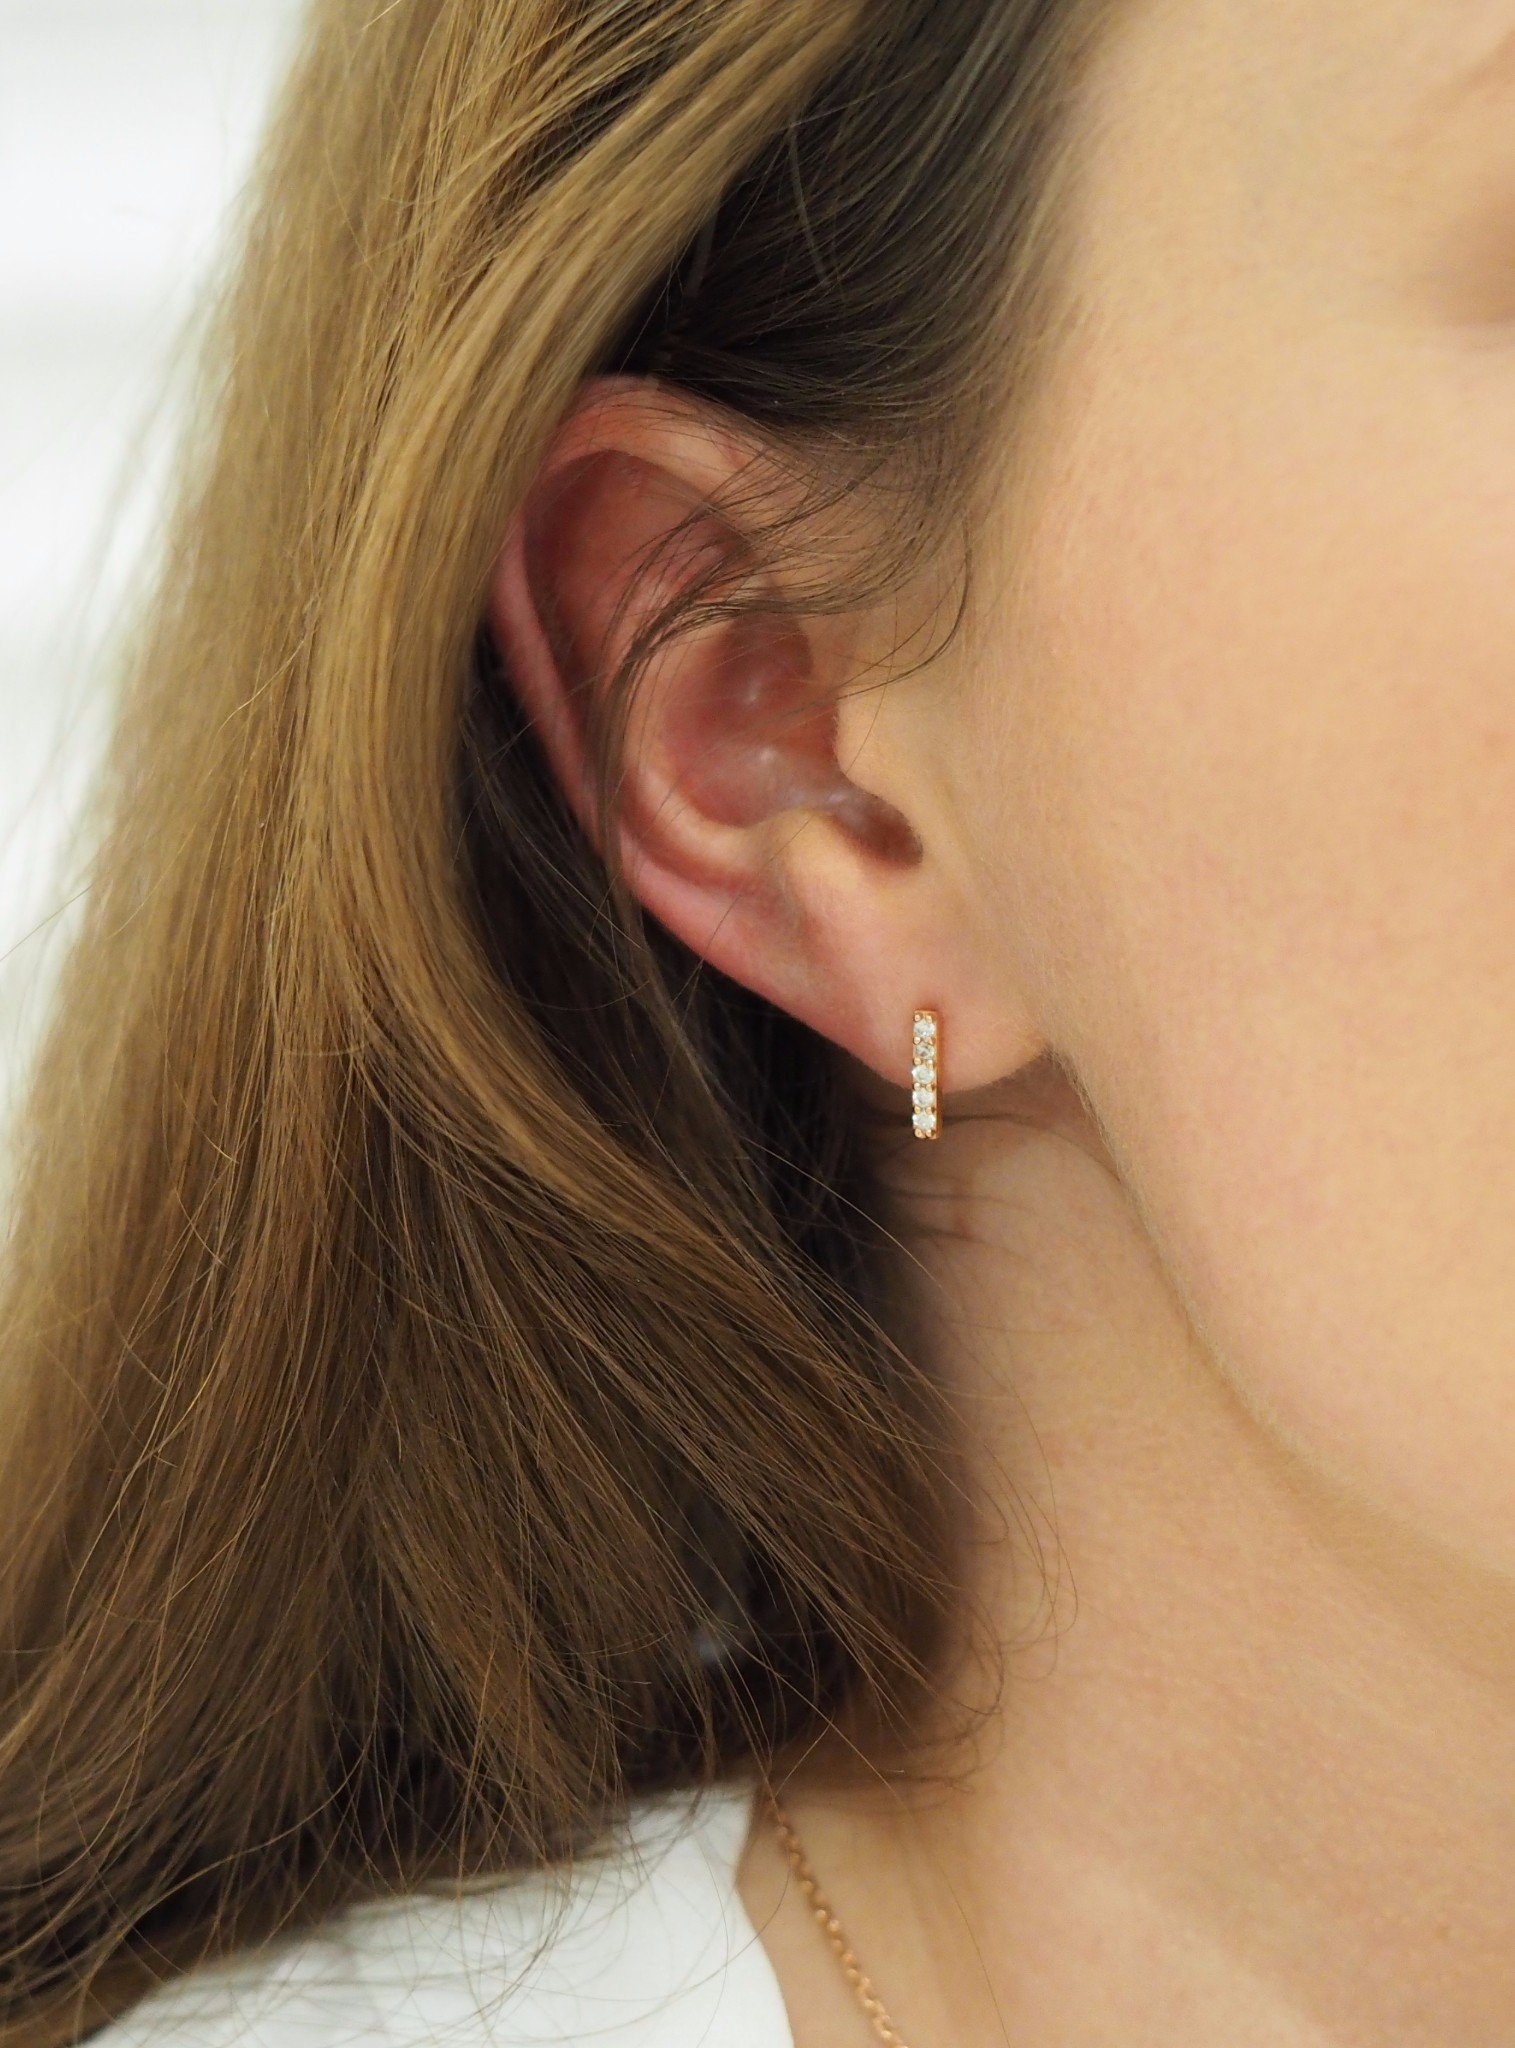 Emilia CZ Drop Small Bar Earrings in Rose Gold